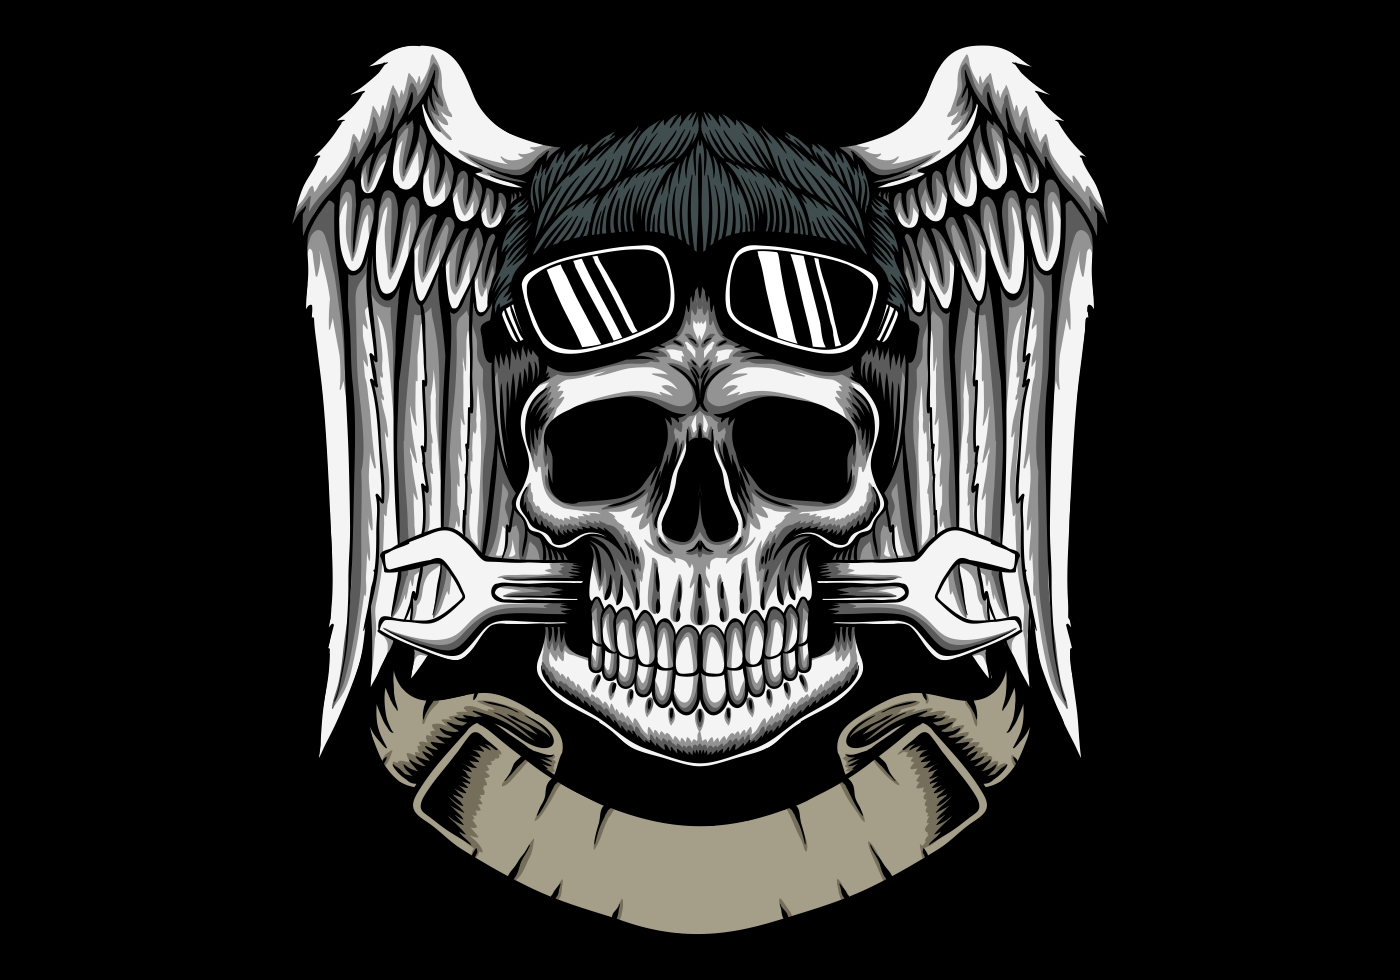 Mechanic skull head with wings and banner emblem vector